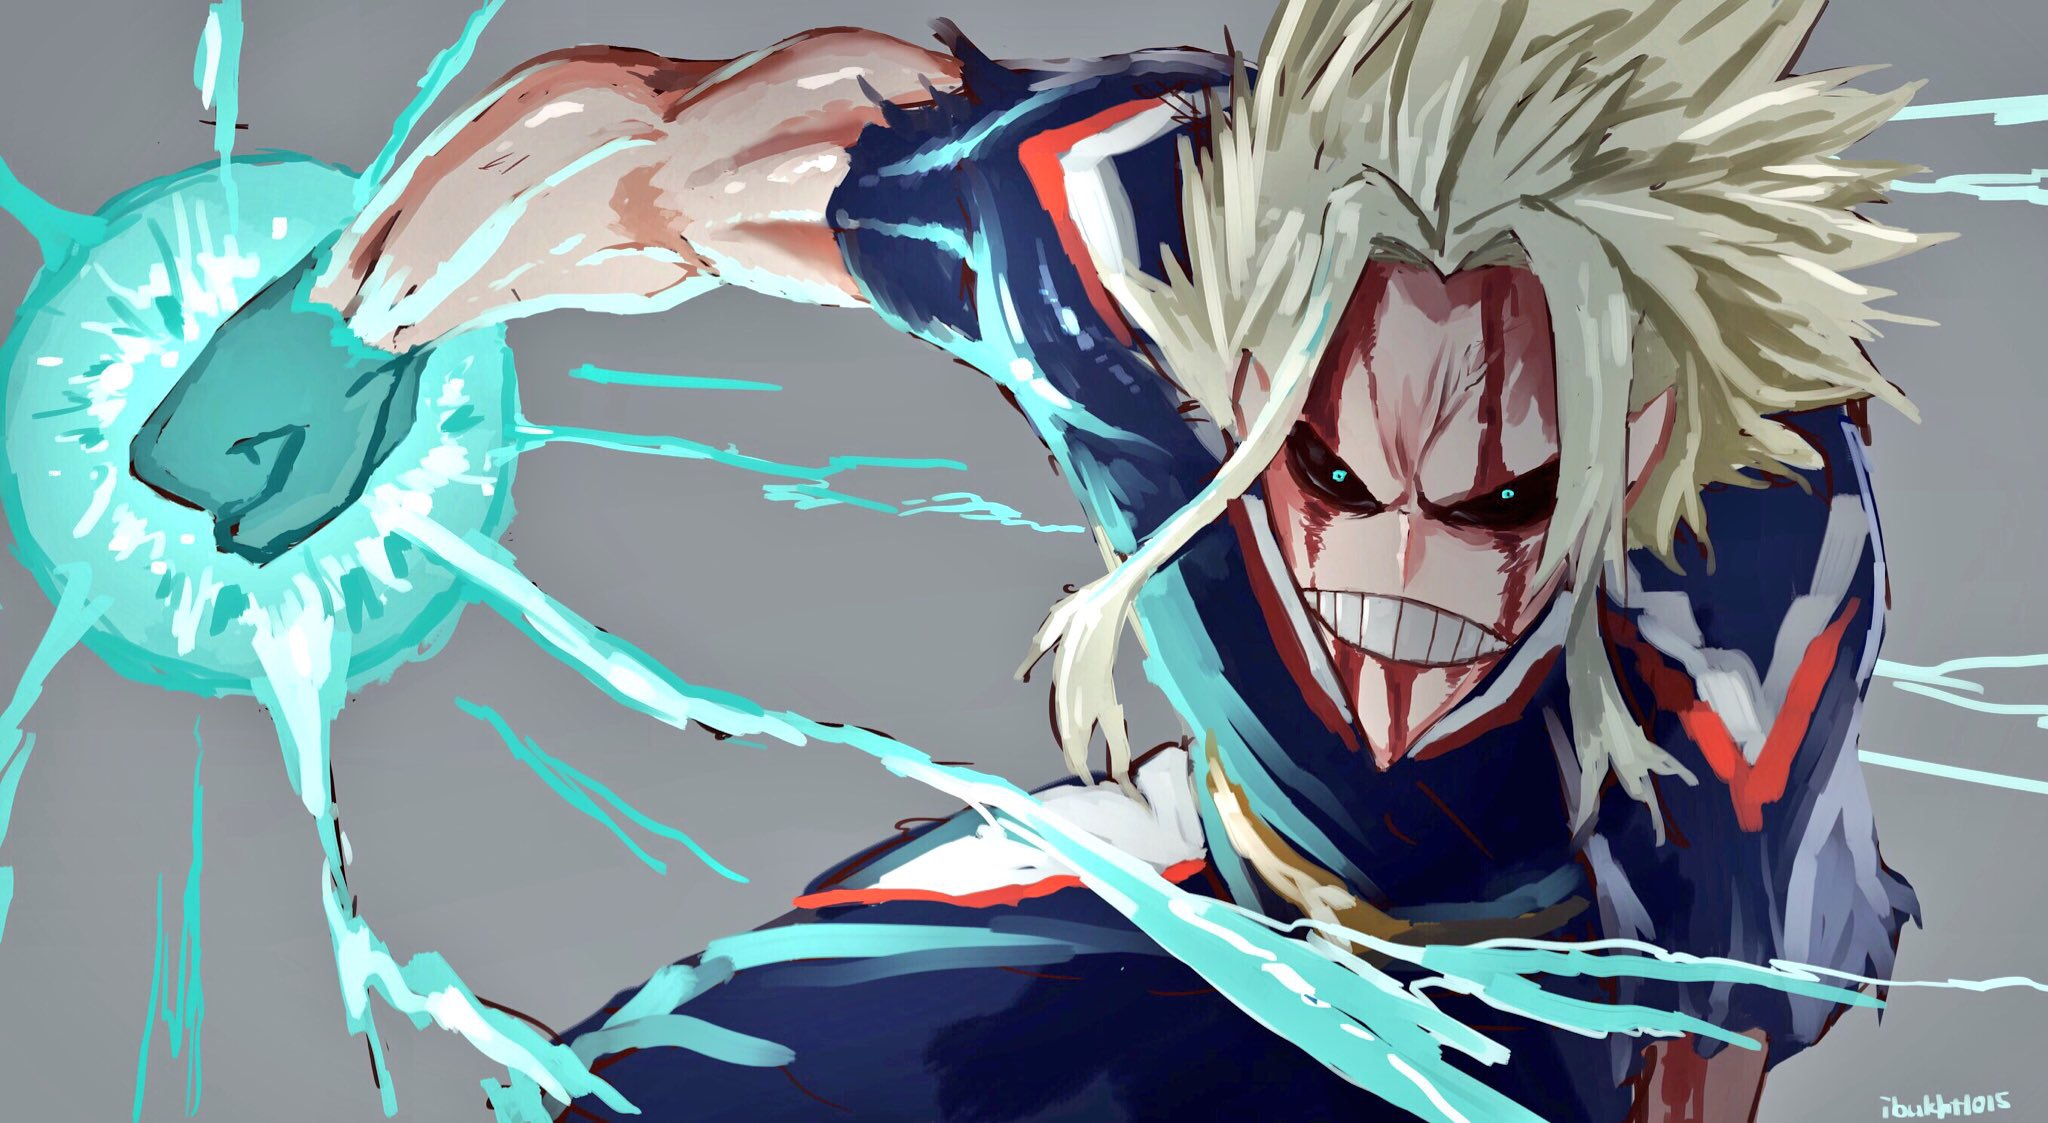 Wallpaper Of Anime My Hero Academia Blood All Might